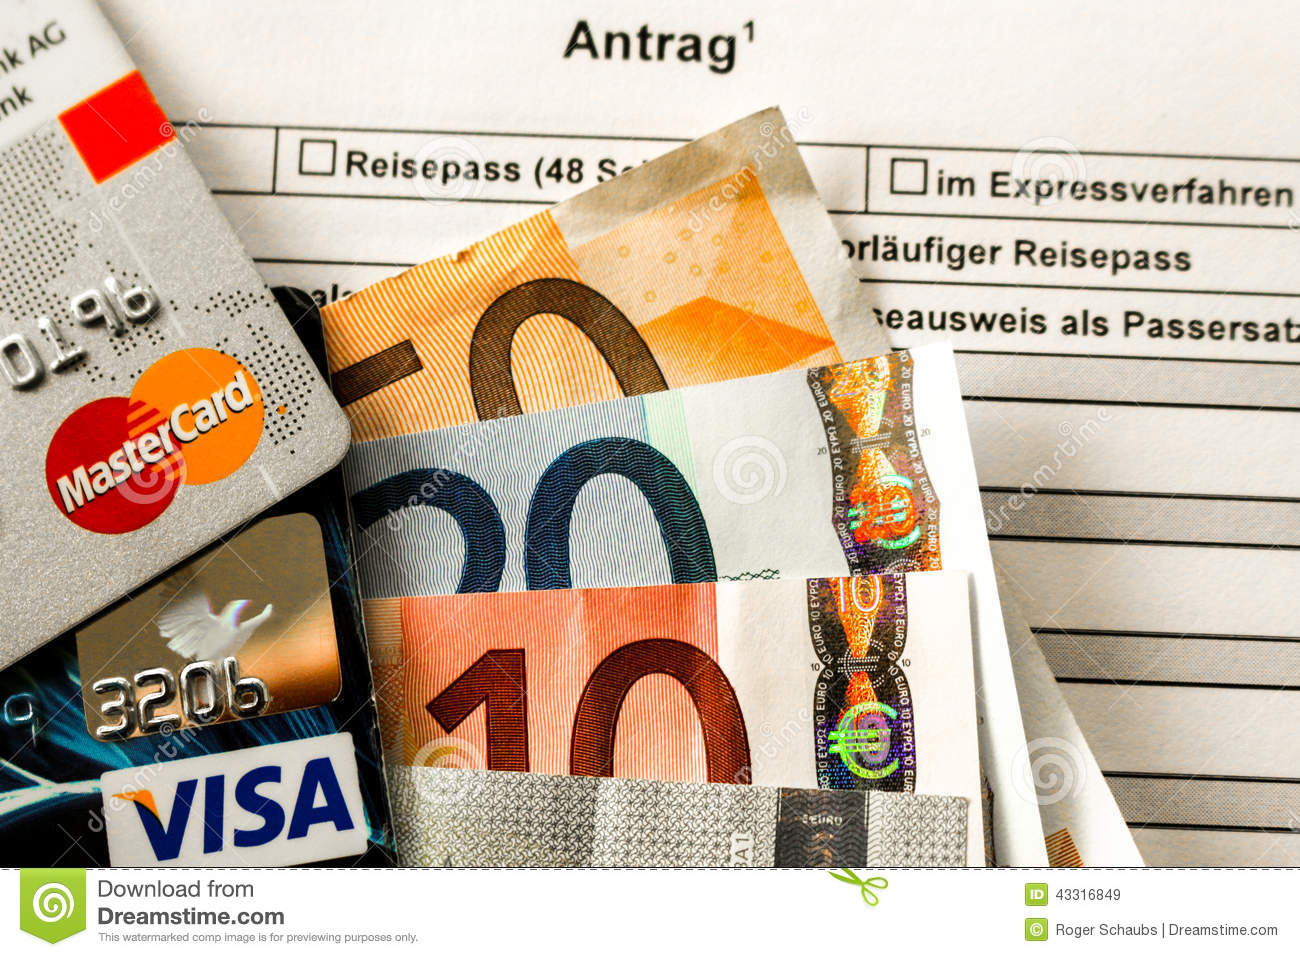 Euro Bank Notes With Mastercard And Visa Card On A German Passport